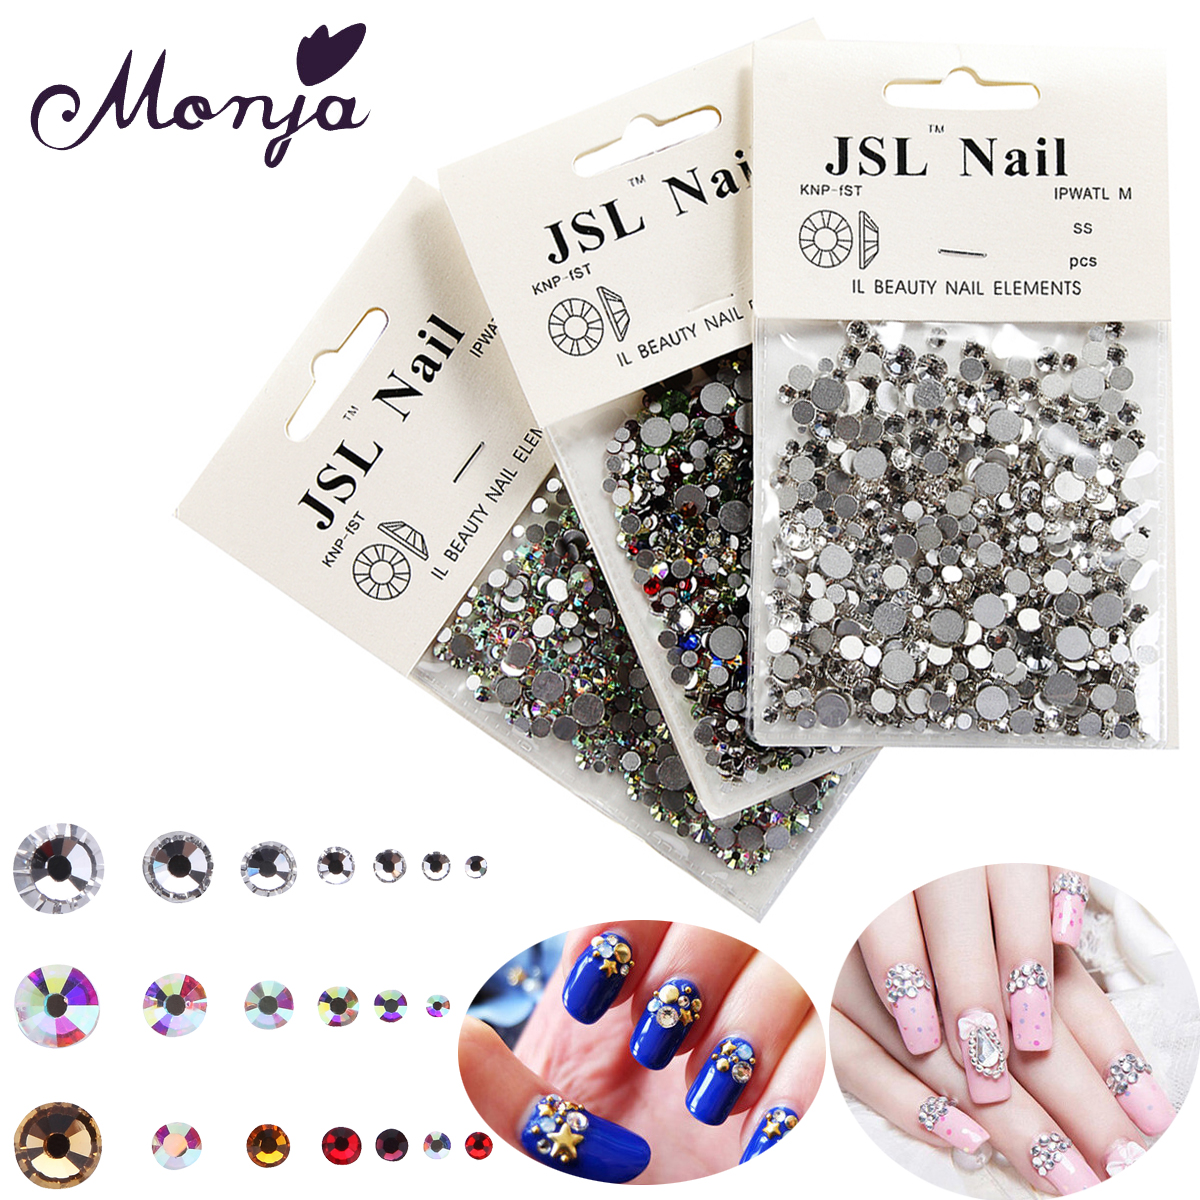 1200Pcs/Bag Multisize Nail Art Diamond Gem Style Shiny Rhinestone Beads Gel Polish Tips 3D DIY Glitter Sparkly Jewelry Accessory dn2 39 mix 2 3mm solvent resistant neon diamond shape glitter for nail polish acrylic polish and diy supplies1pack 50g